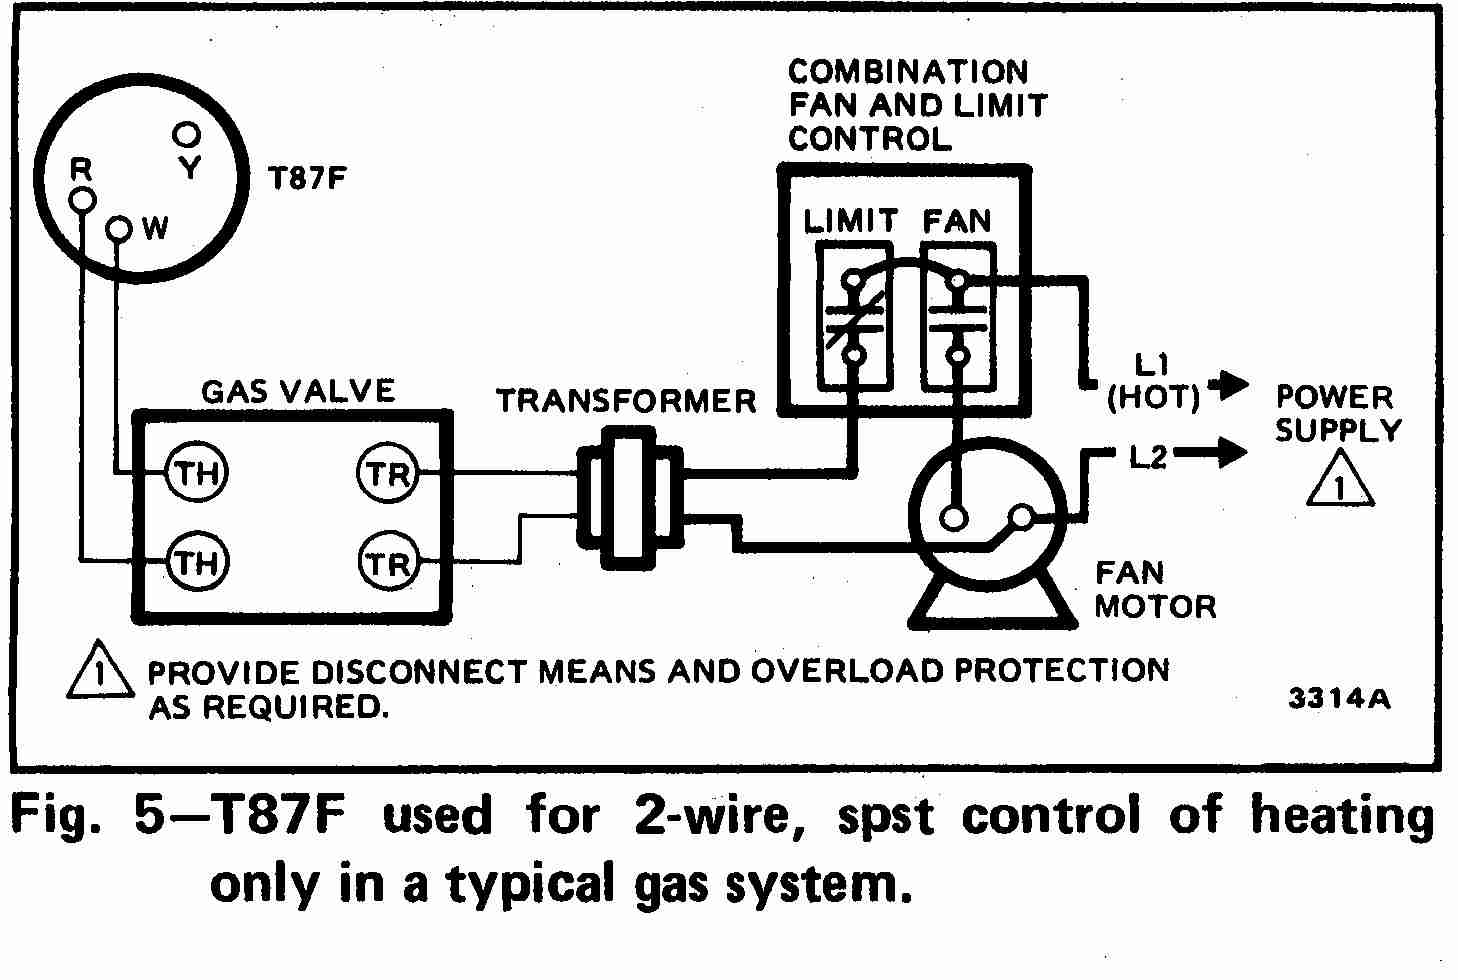 TT_T87F_0002_2Wg_DJF guide to wiring connections for room thermostats wiring diagram thermostat at mr168.co